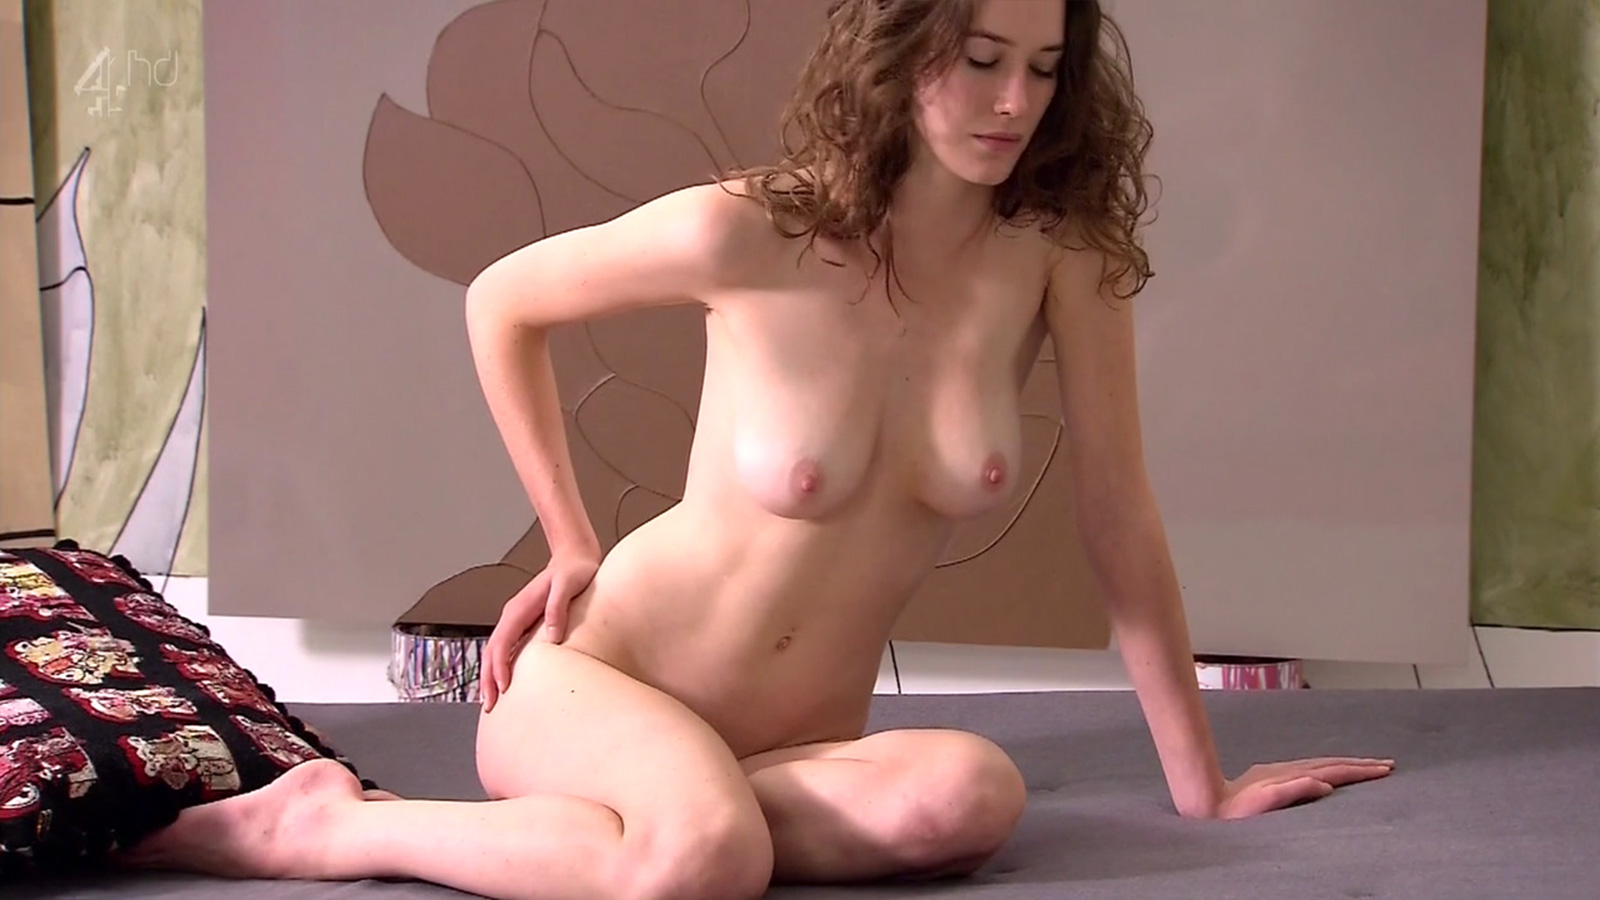 Sarah power nude images sorry, this